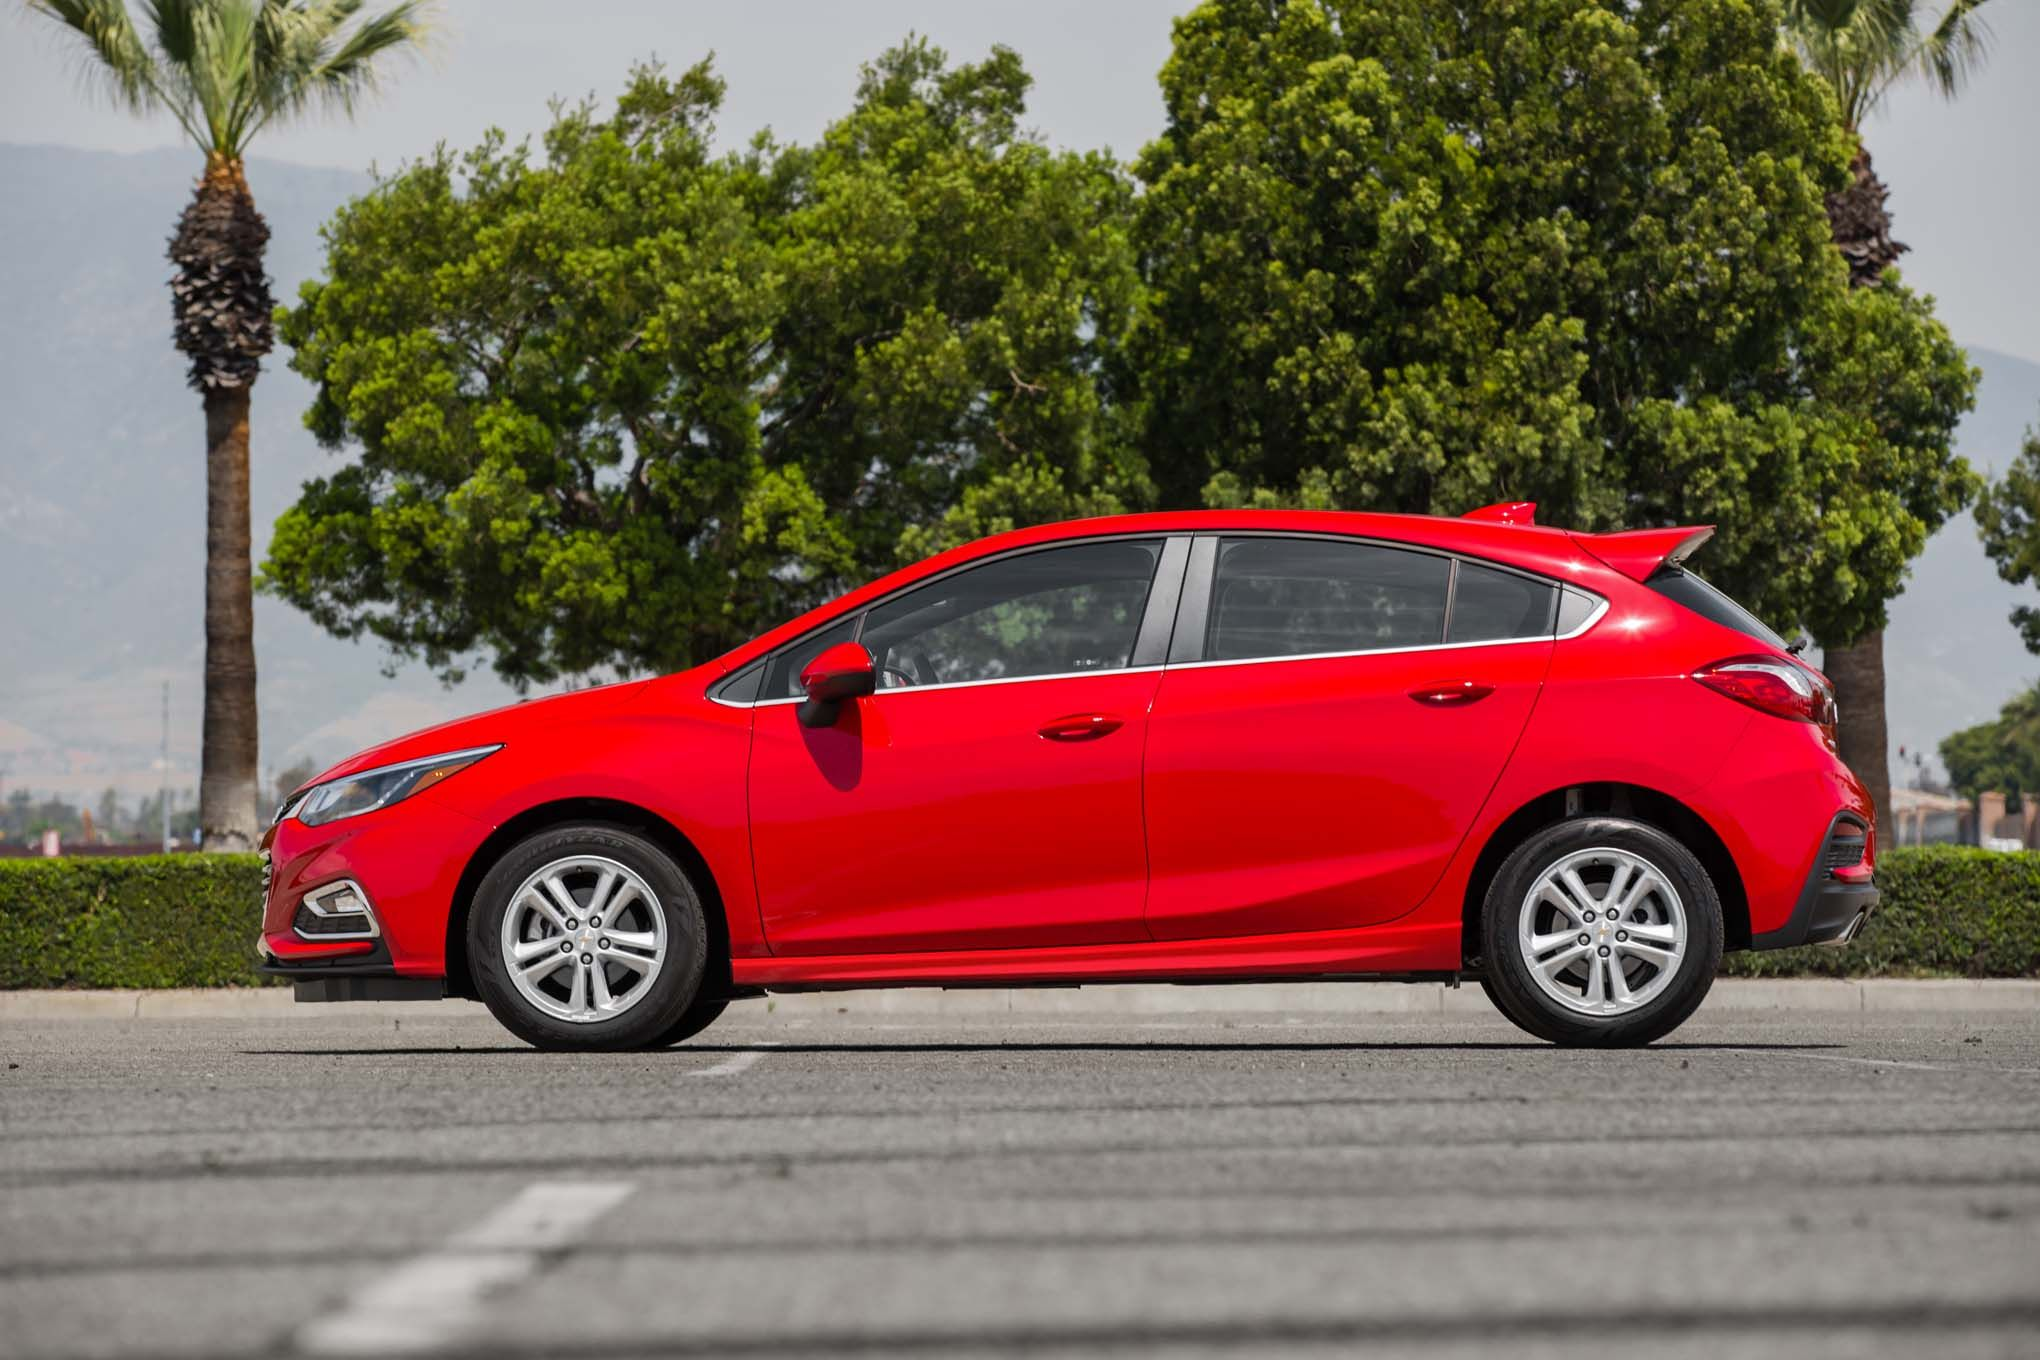 New Chevy Cruze Hatchback Red For Sale At Chevrolet Dealership